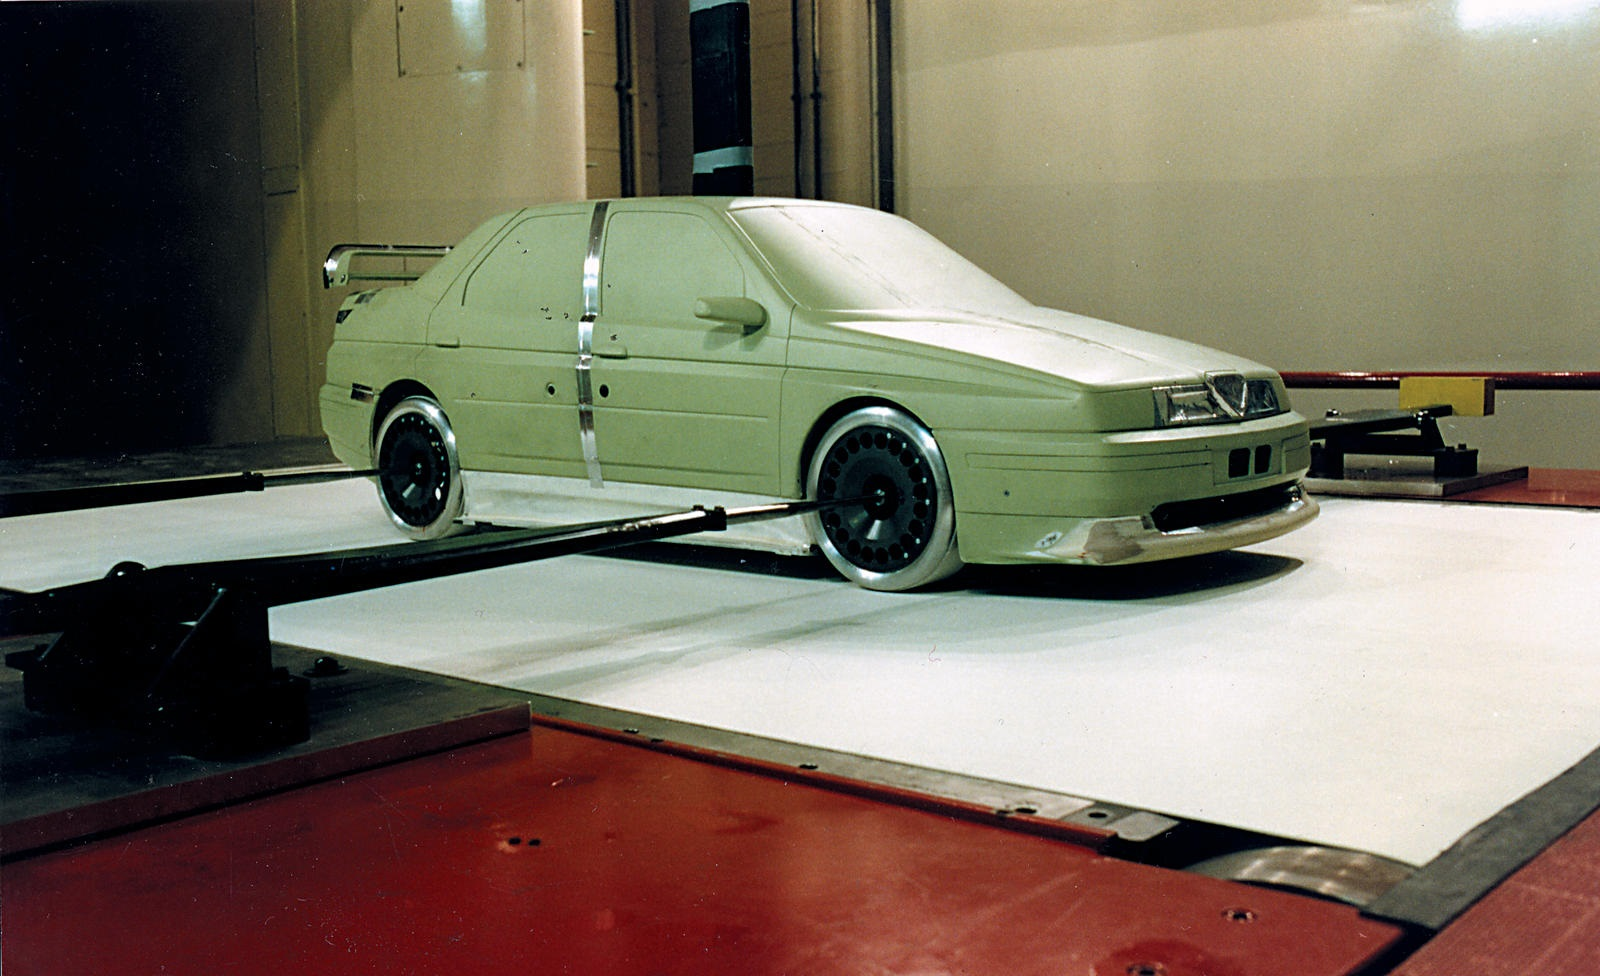 1993 Alfa Romeo 155 GTA model